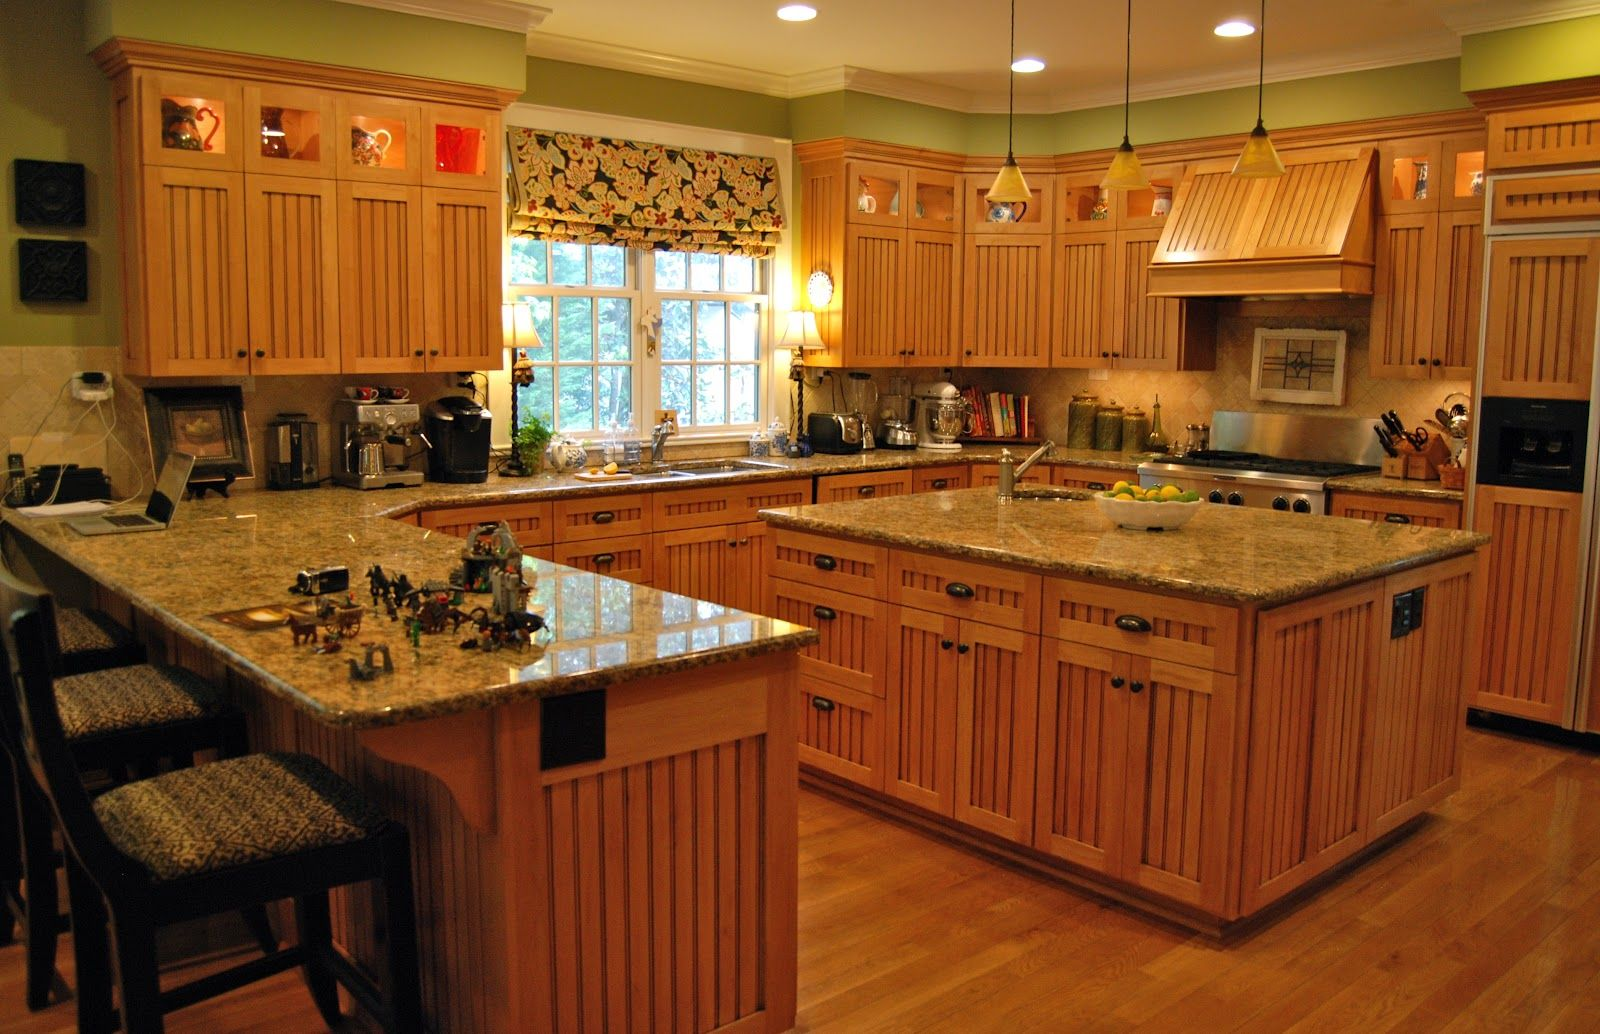 white brown colors kitchen breakfast. Unique Breakfast Decorating Decision To Makeplease Help Throughout White Brown Colors Kitchen Breakfast